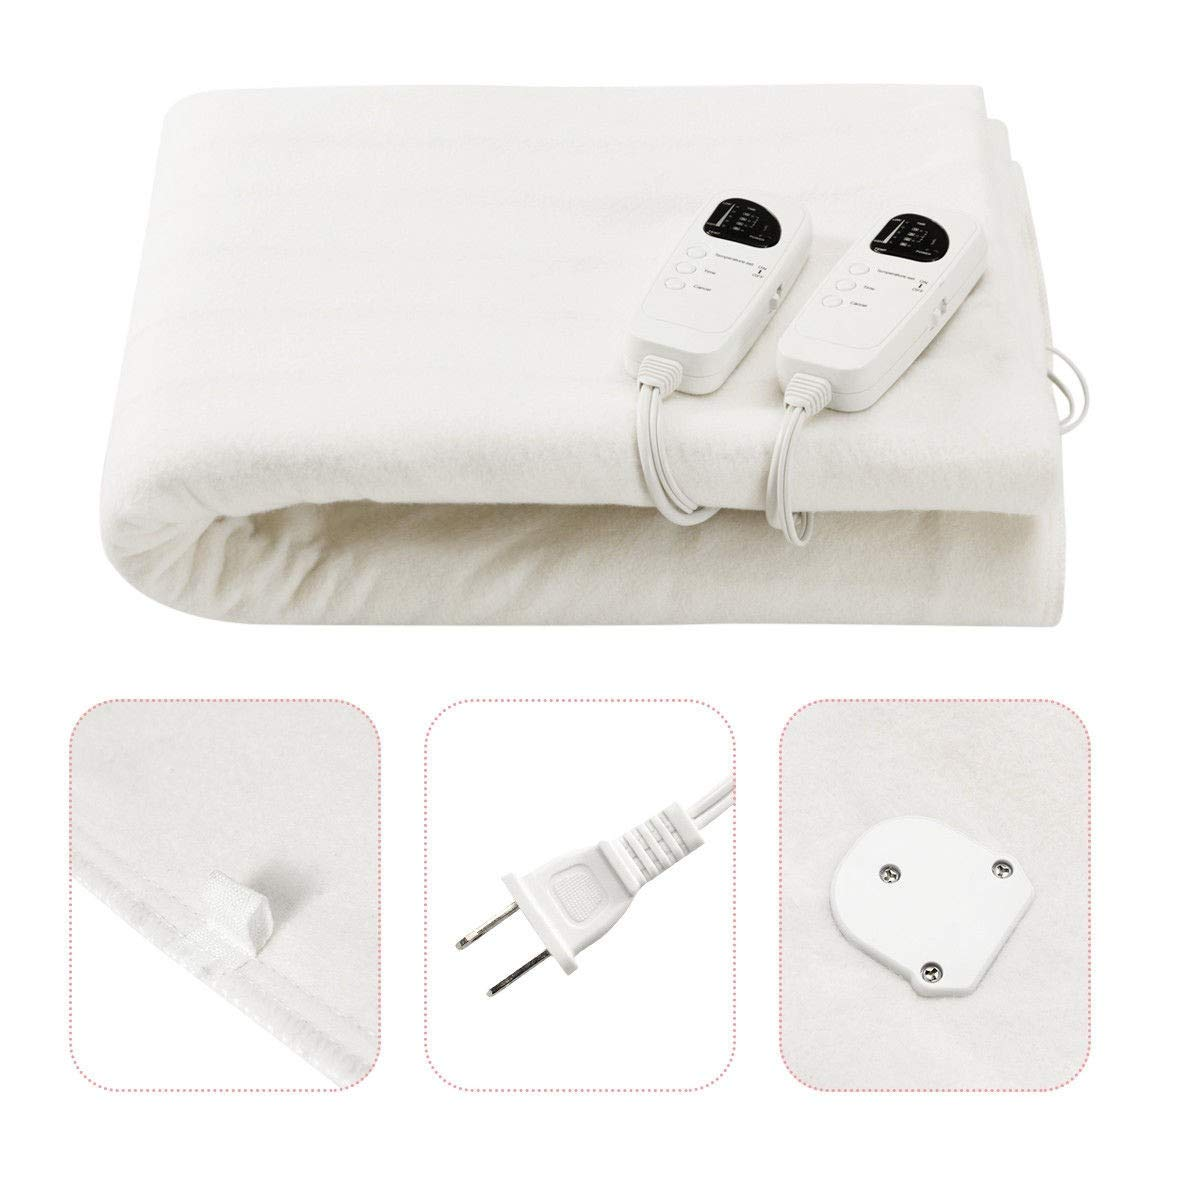 USA_BEST_SELLER 8H Timer Electric Heated Thermal Blanket 5 Temperature Modes Low-Voltage Heat Function 8H Electric Blanket, Soft Comfortable Polyester Fibre